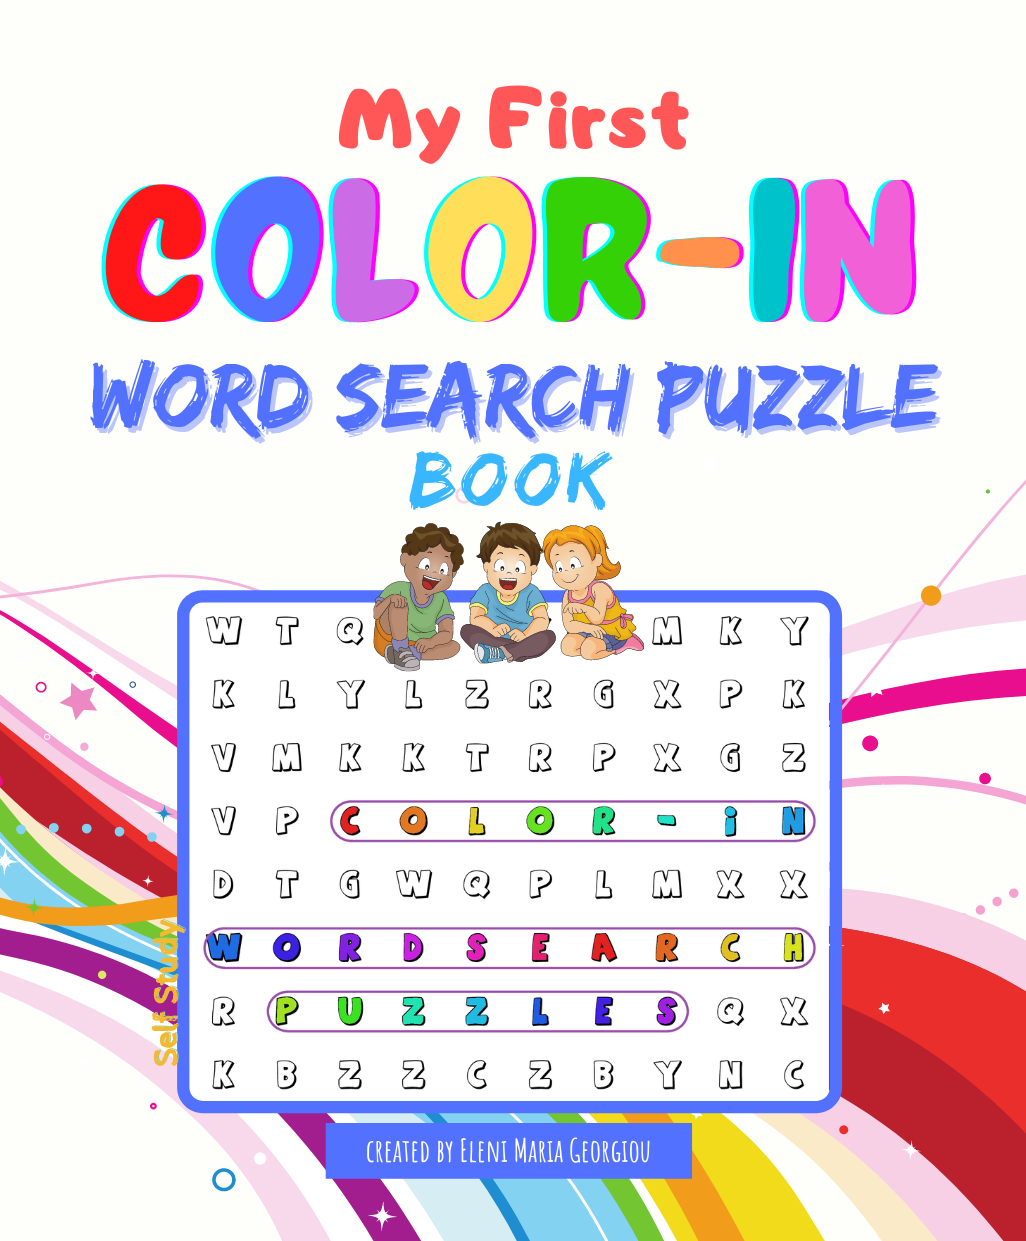 My First Color-In Word Search Puzzle Book